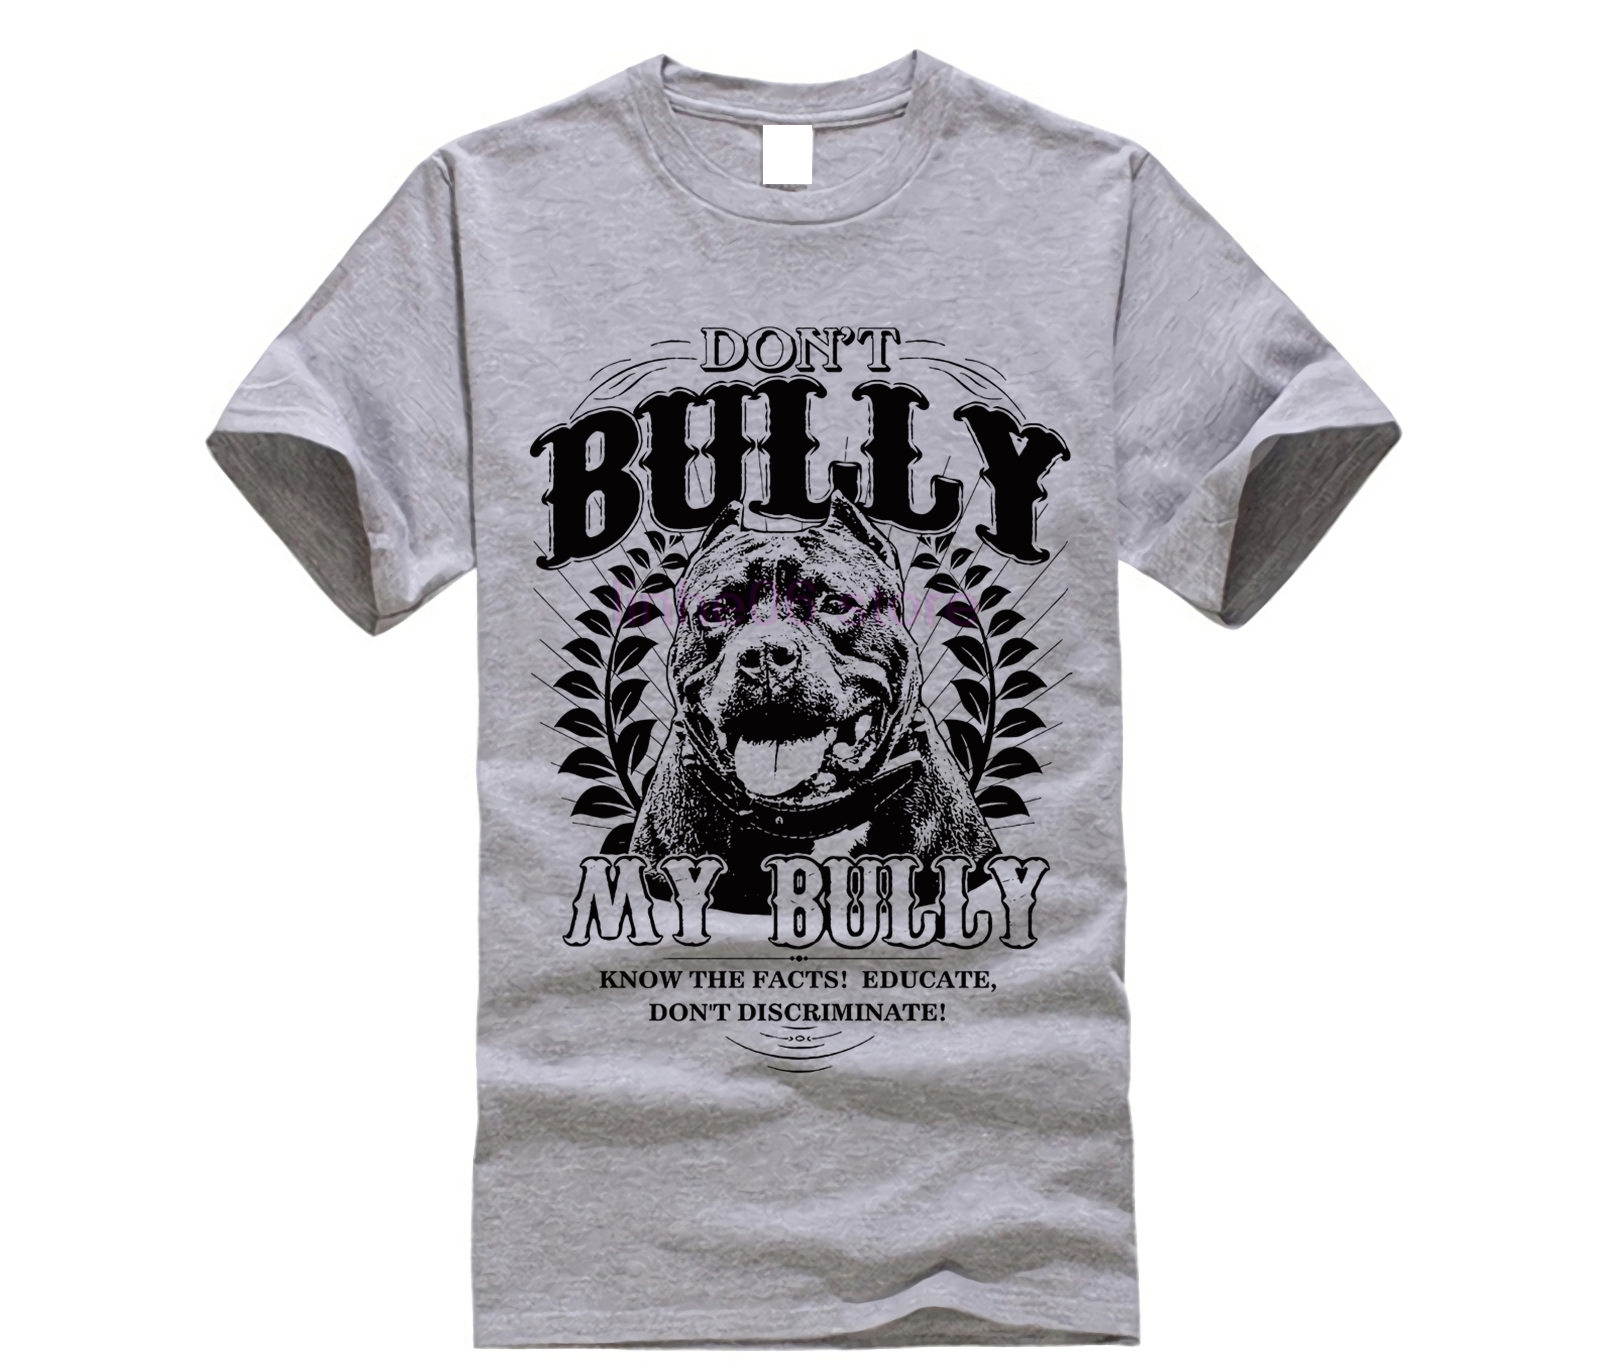 2019 New Arrival Tees Men 100% cotton T <font><b>shirt</b></font> Don't Bully My Bully <font><b>Pit</b></font> <font><b>Bull</b></font> Advocate for Pitbull lovers T <font><b>shirt</b></font> designer image